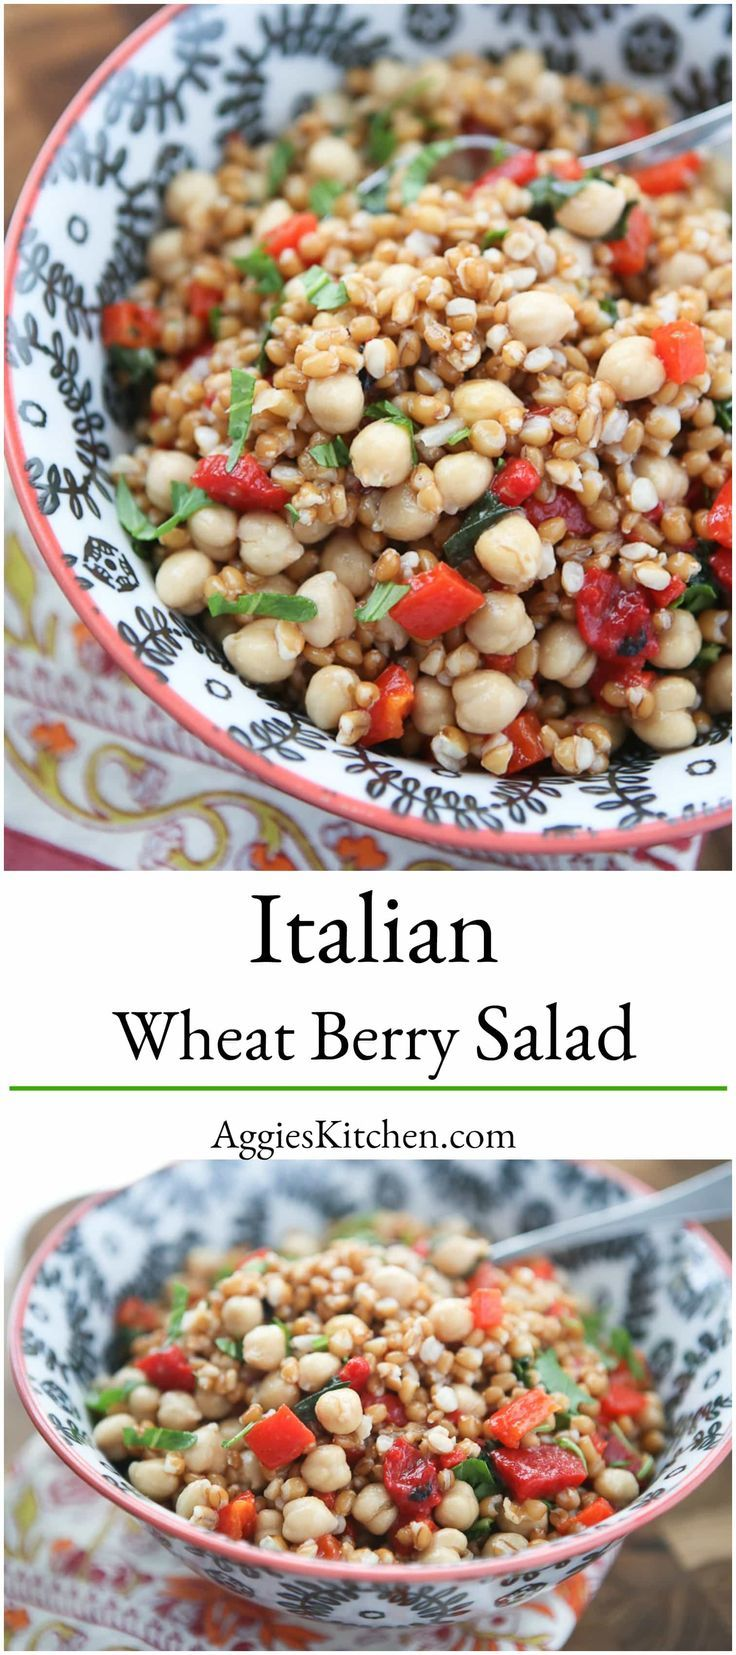 Italian Wheat Berry Salad | Recipe | Wheat berry salad and ...